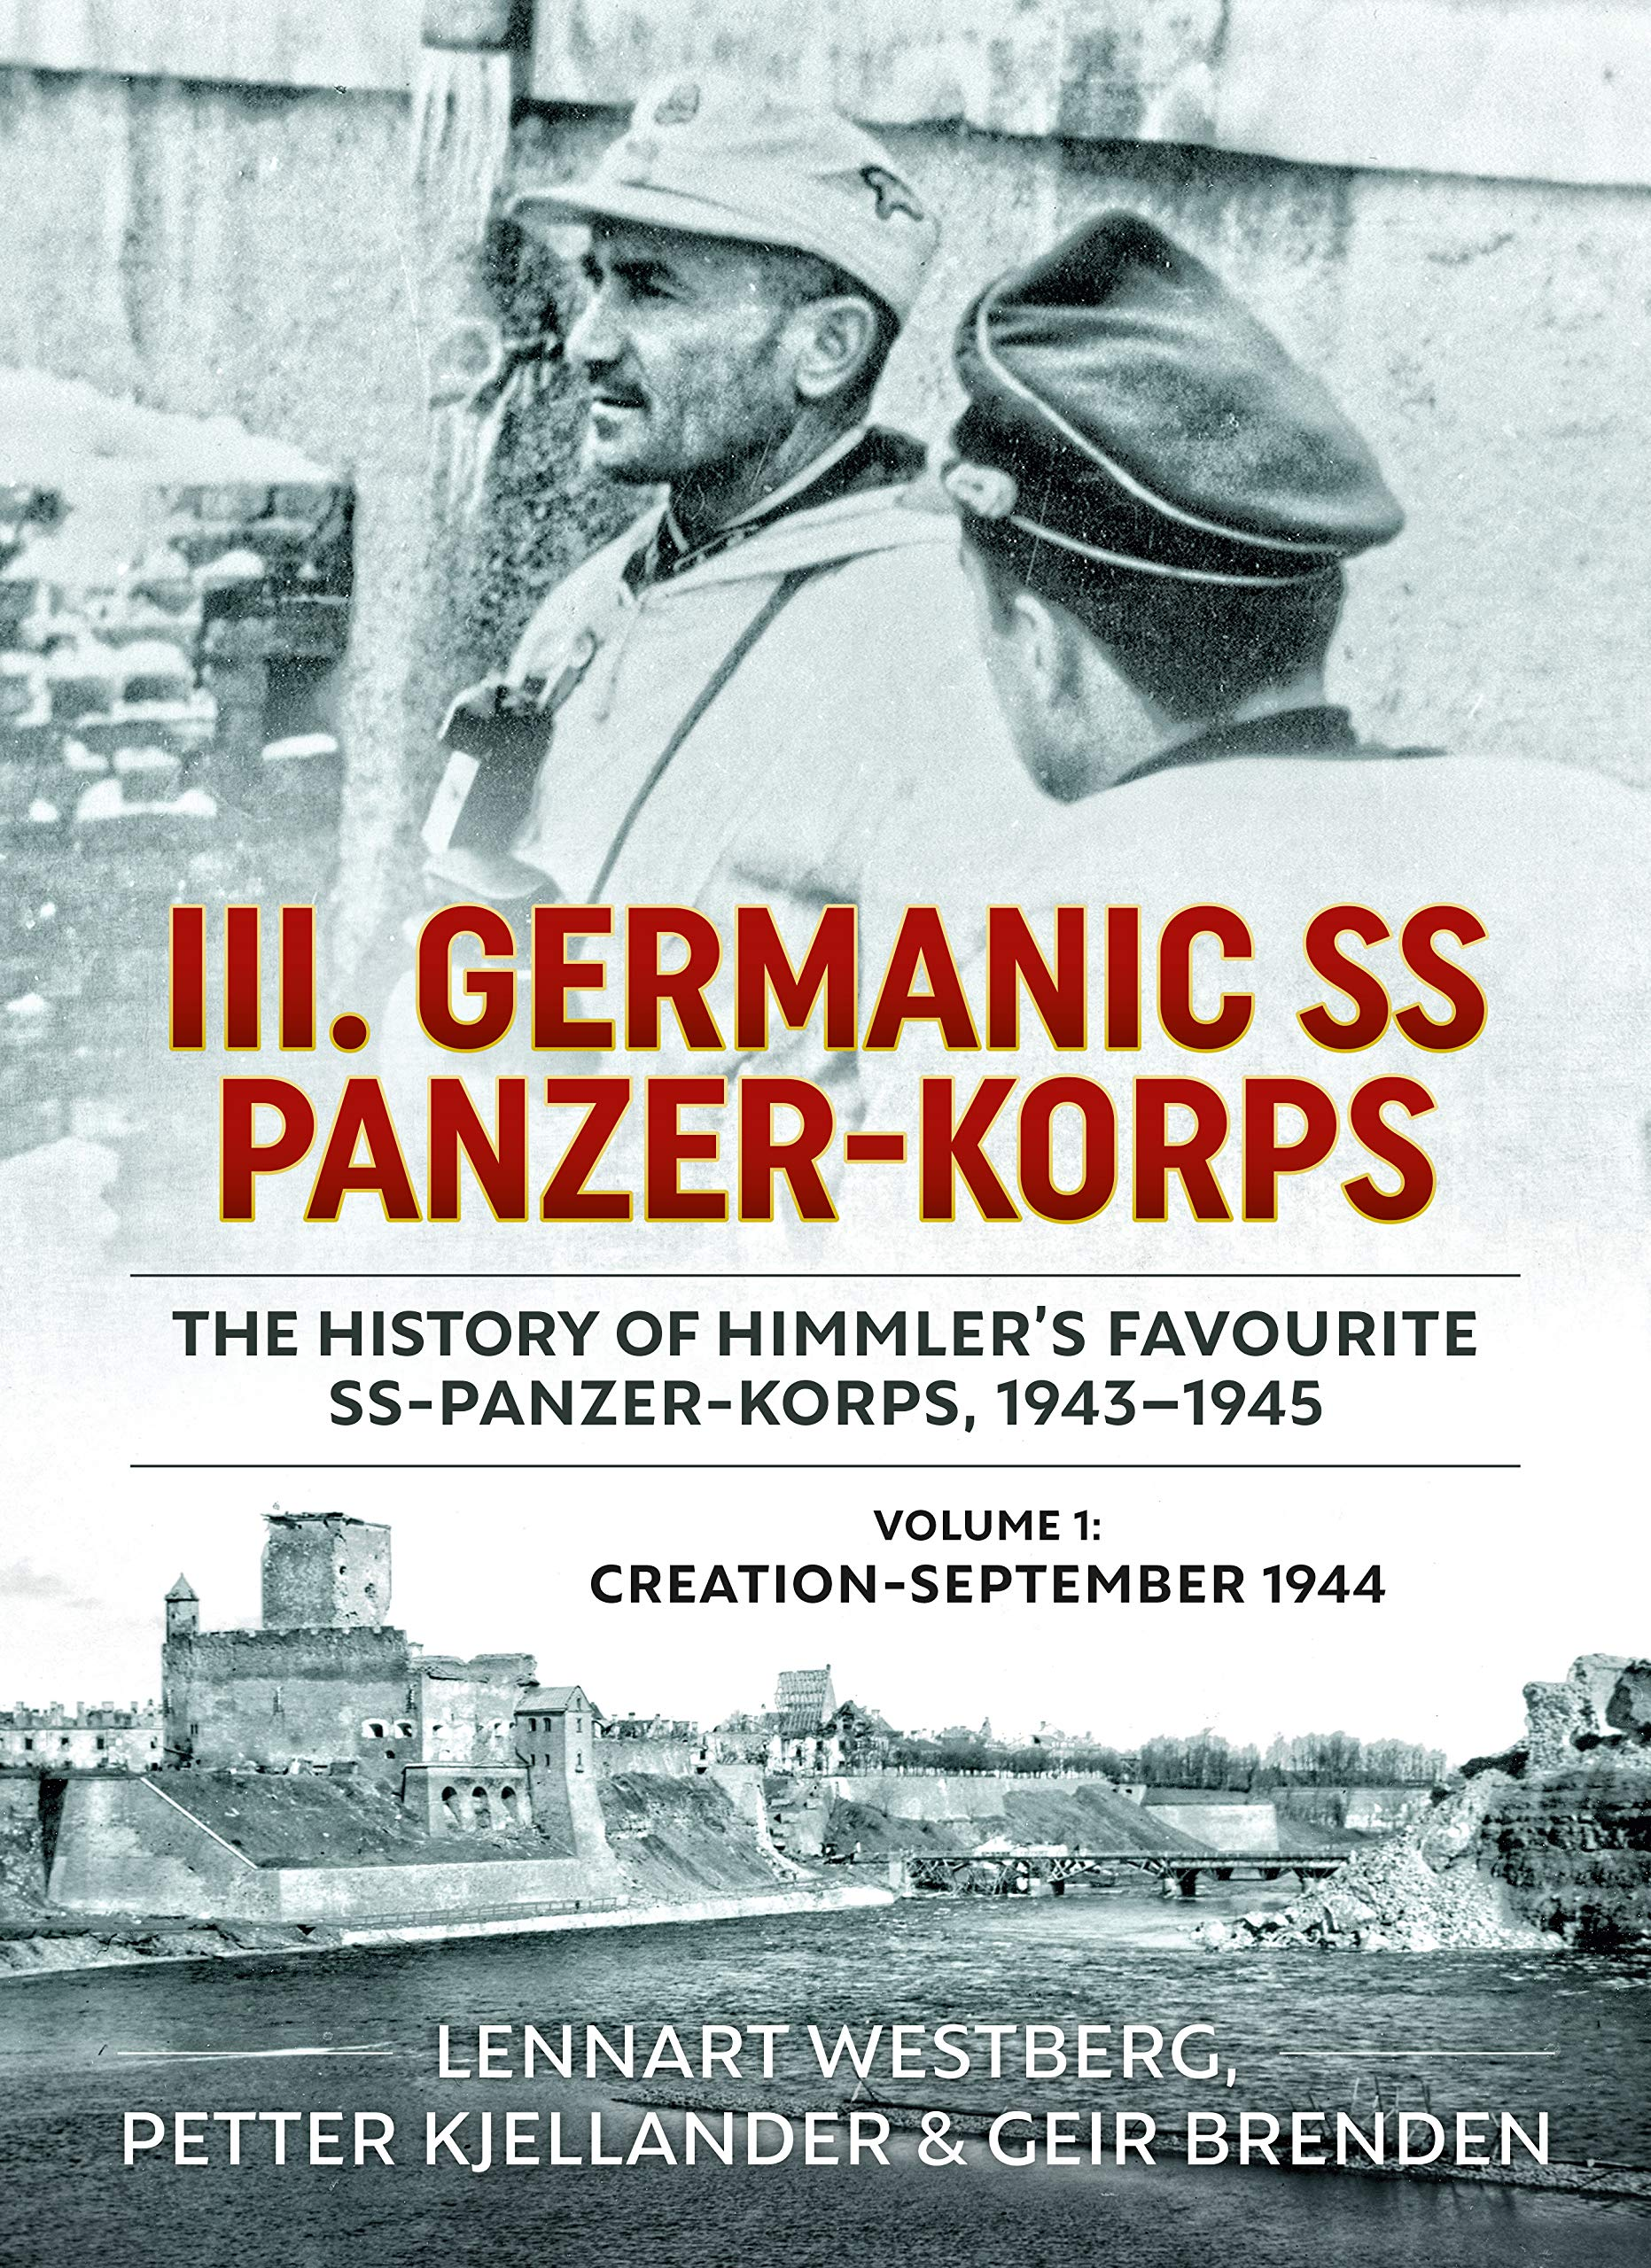 III. Germanic SS Panzer-Korps. The History of Himmler's Favourite SS Panzer-Korps, 1943-1945: Volume 1: Creation - September 1944 by Helion and Company